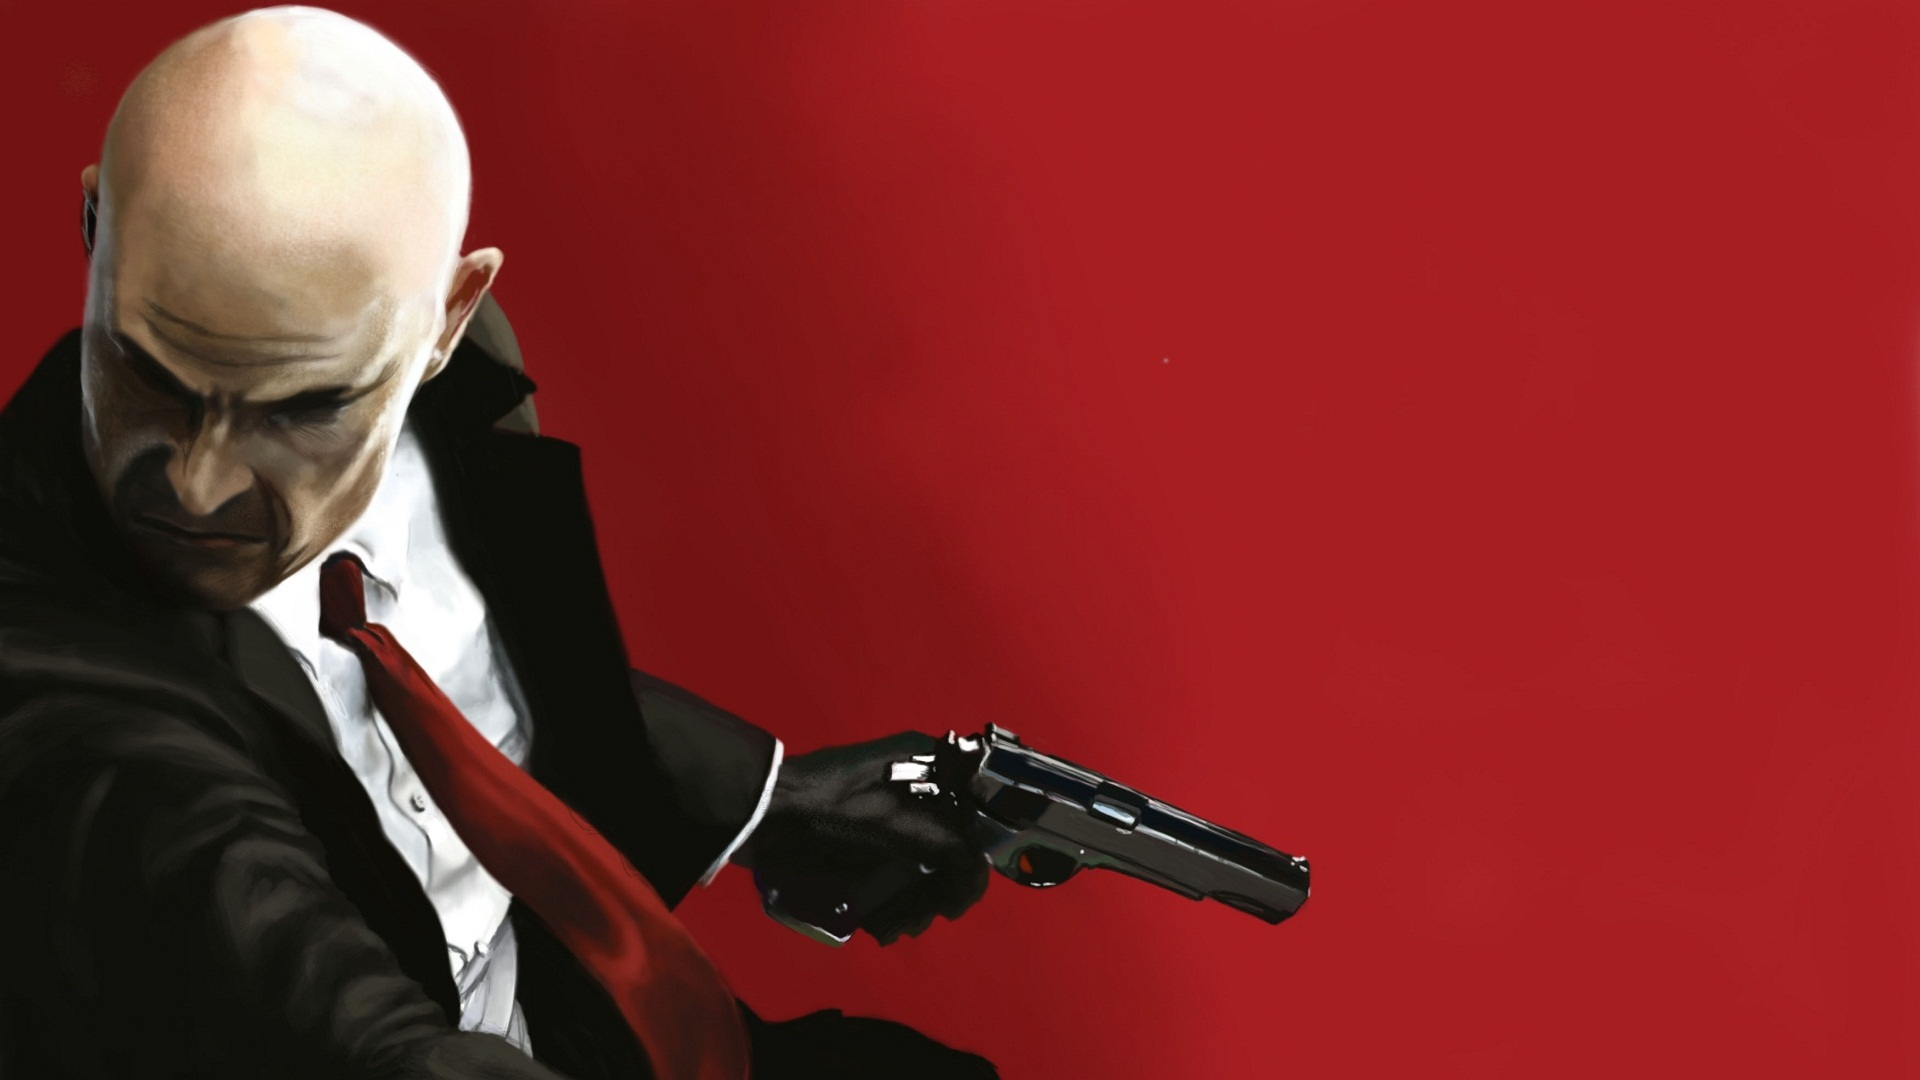 Hitman Absolution 1080p Wallpaper 1920x1080